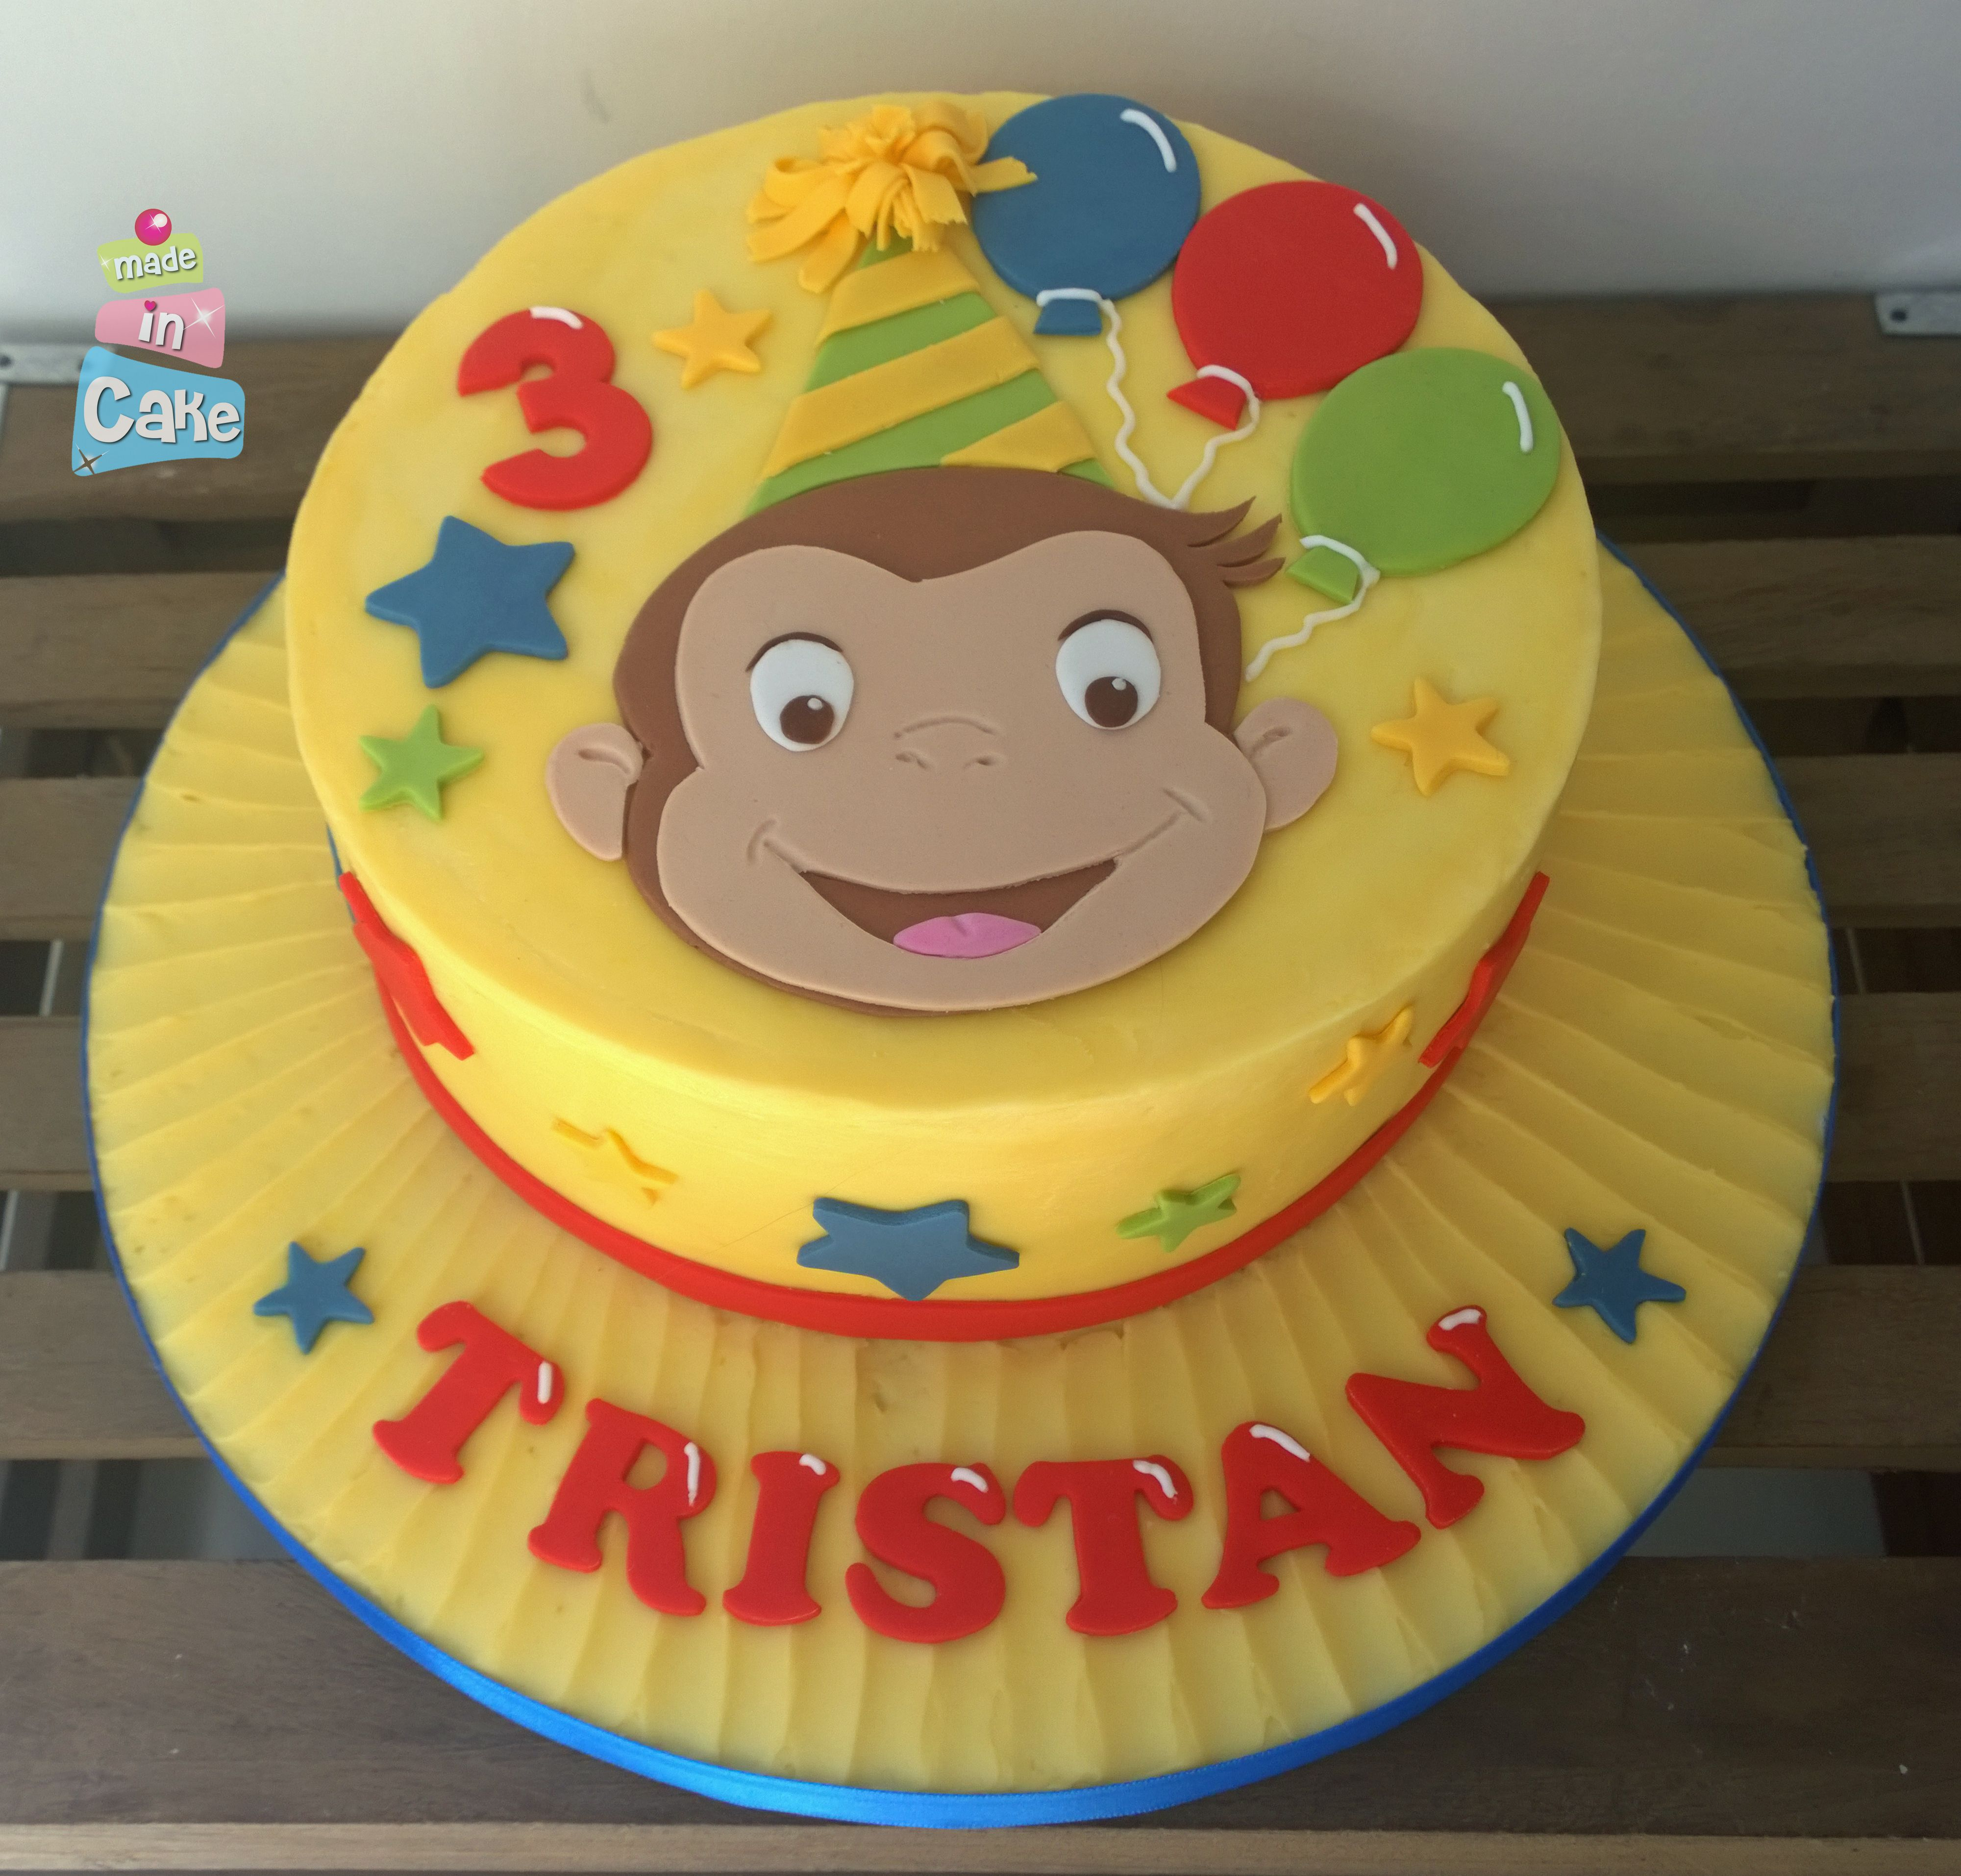 Astounding Curious George Birthday Cake Buttercream With Sugarpaste Accents Personalised Birthday Cards Beptaeletsinfo